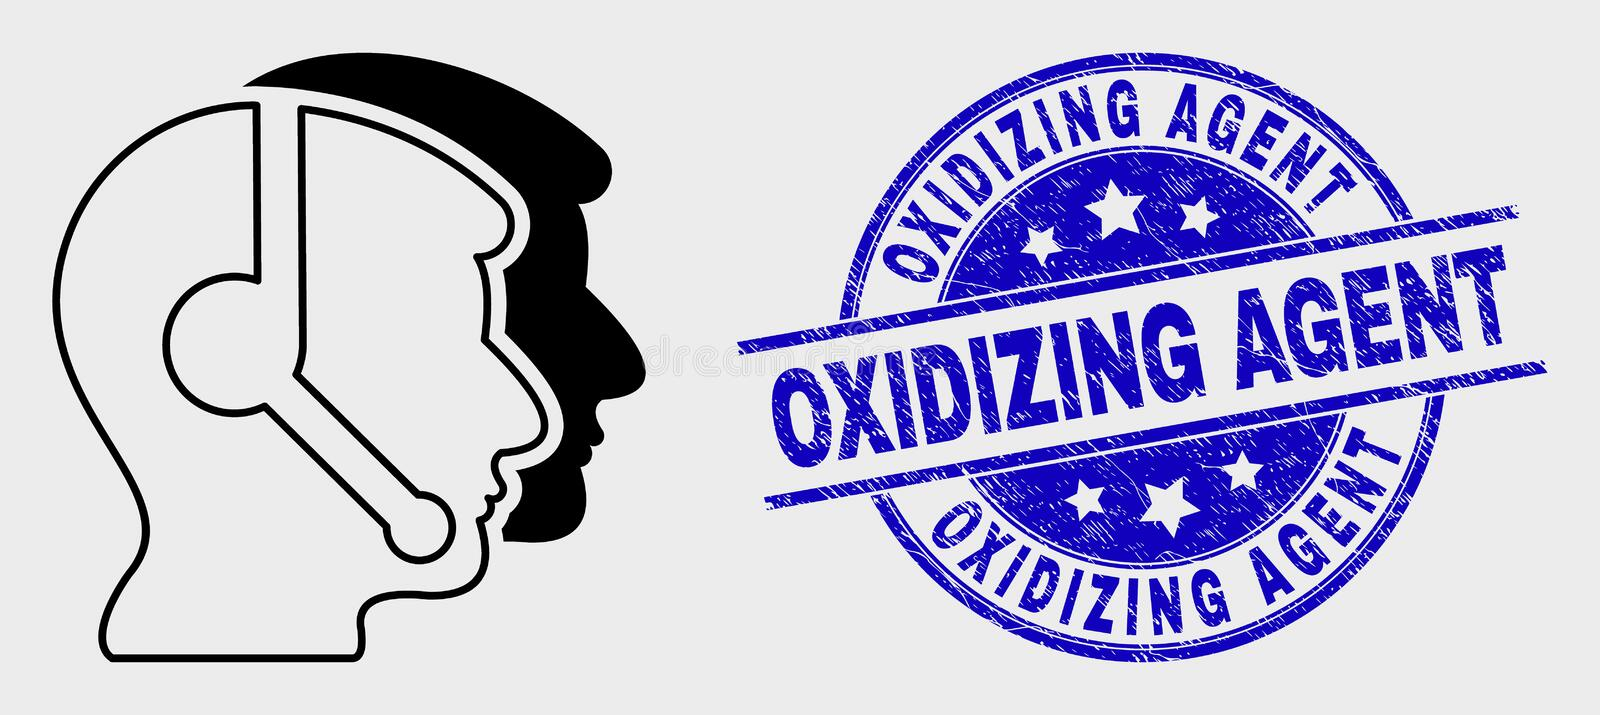 Vector Linear Call Service Operators Icon and Grunge Oxidizing Agent Stamp. Vector stroke call service operators icon and Oxidizing Agent seal stamp. Blue round vector illustration